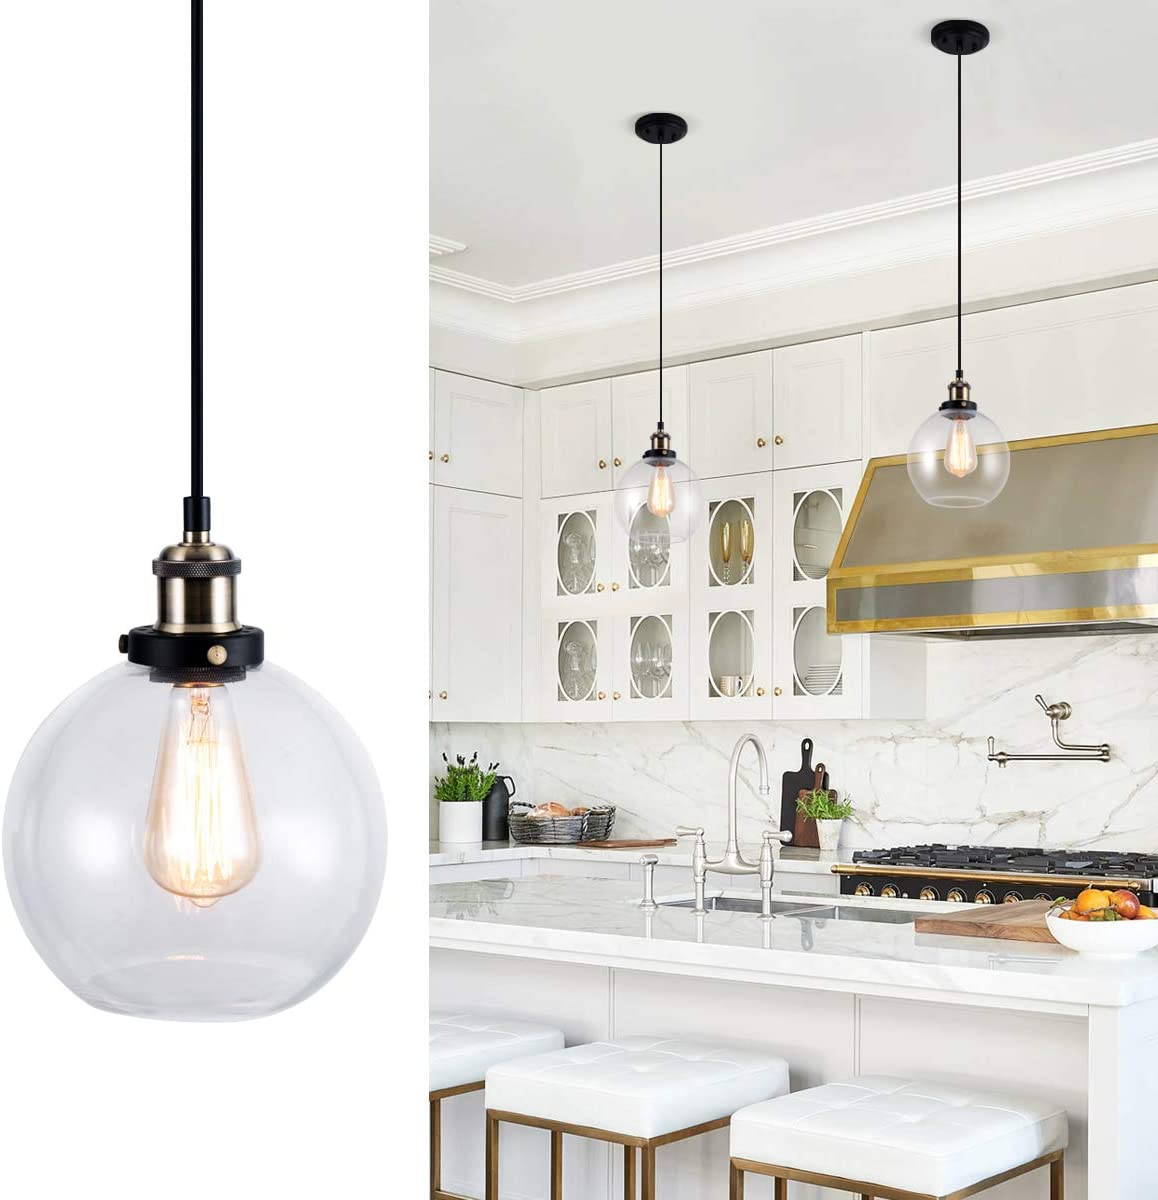 Lanros Modern 1-Light Ceiling Pendant Light with Globe Clear Glass Shade Vintage Classic Pendant Lighting for Kitchen Sink Bedroom, Antique Brass Pendant Mini Light Fixture